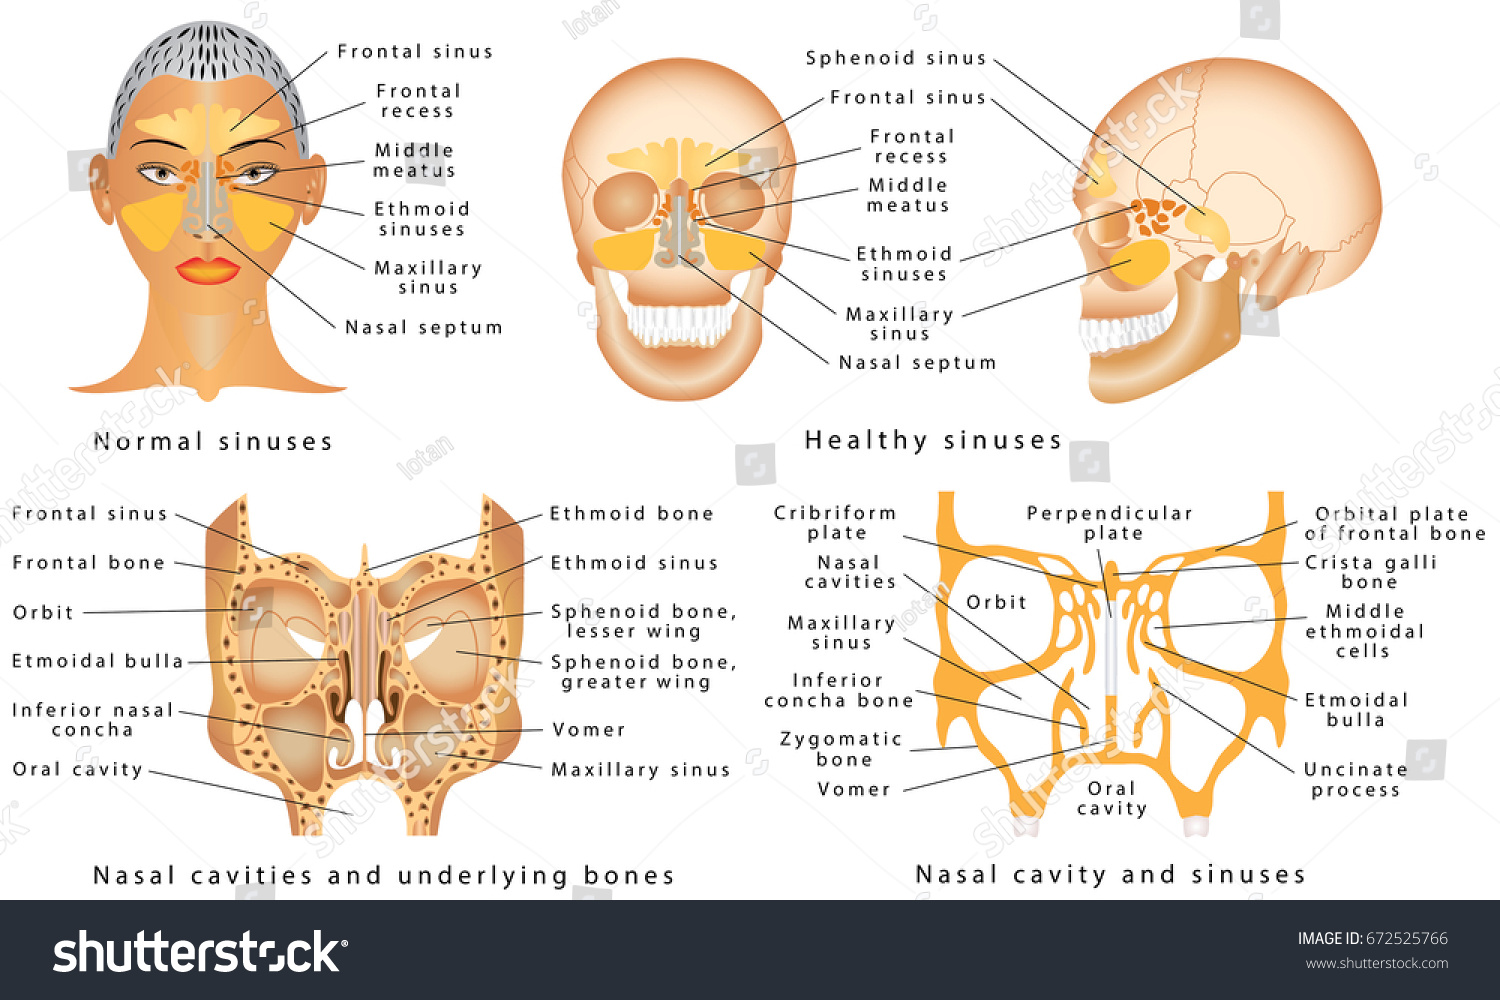 Sinuses Nose Human Anatomy Sinus Diagram Stock Vector 672525766 ...